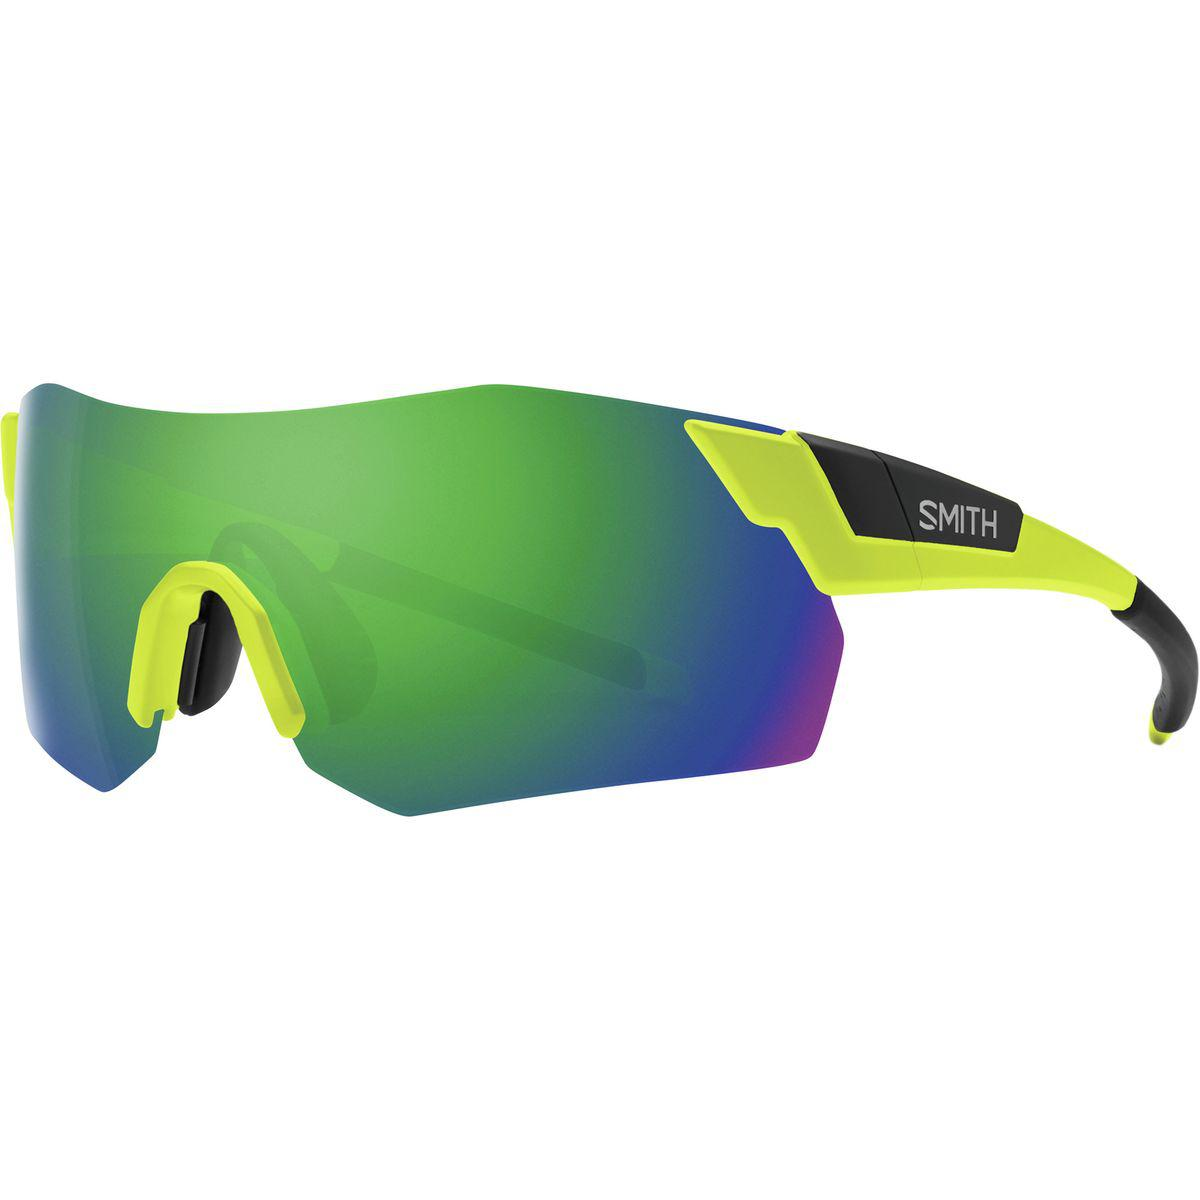 3217a44718 Lyst - Smith Pivlock Arena Max Chromapop Sunglasses in Green for Men